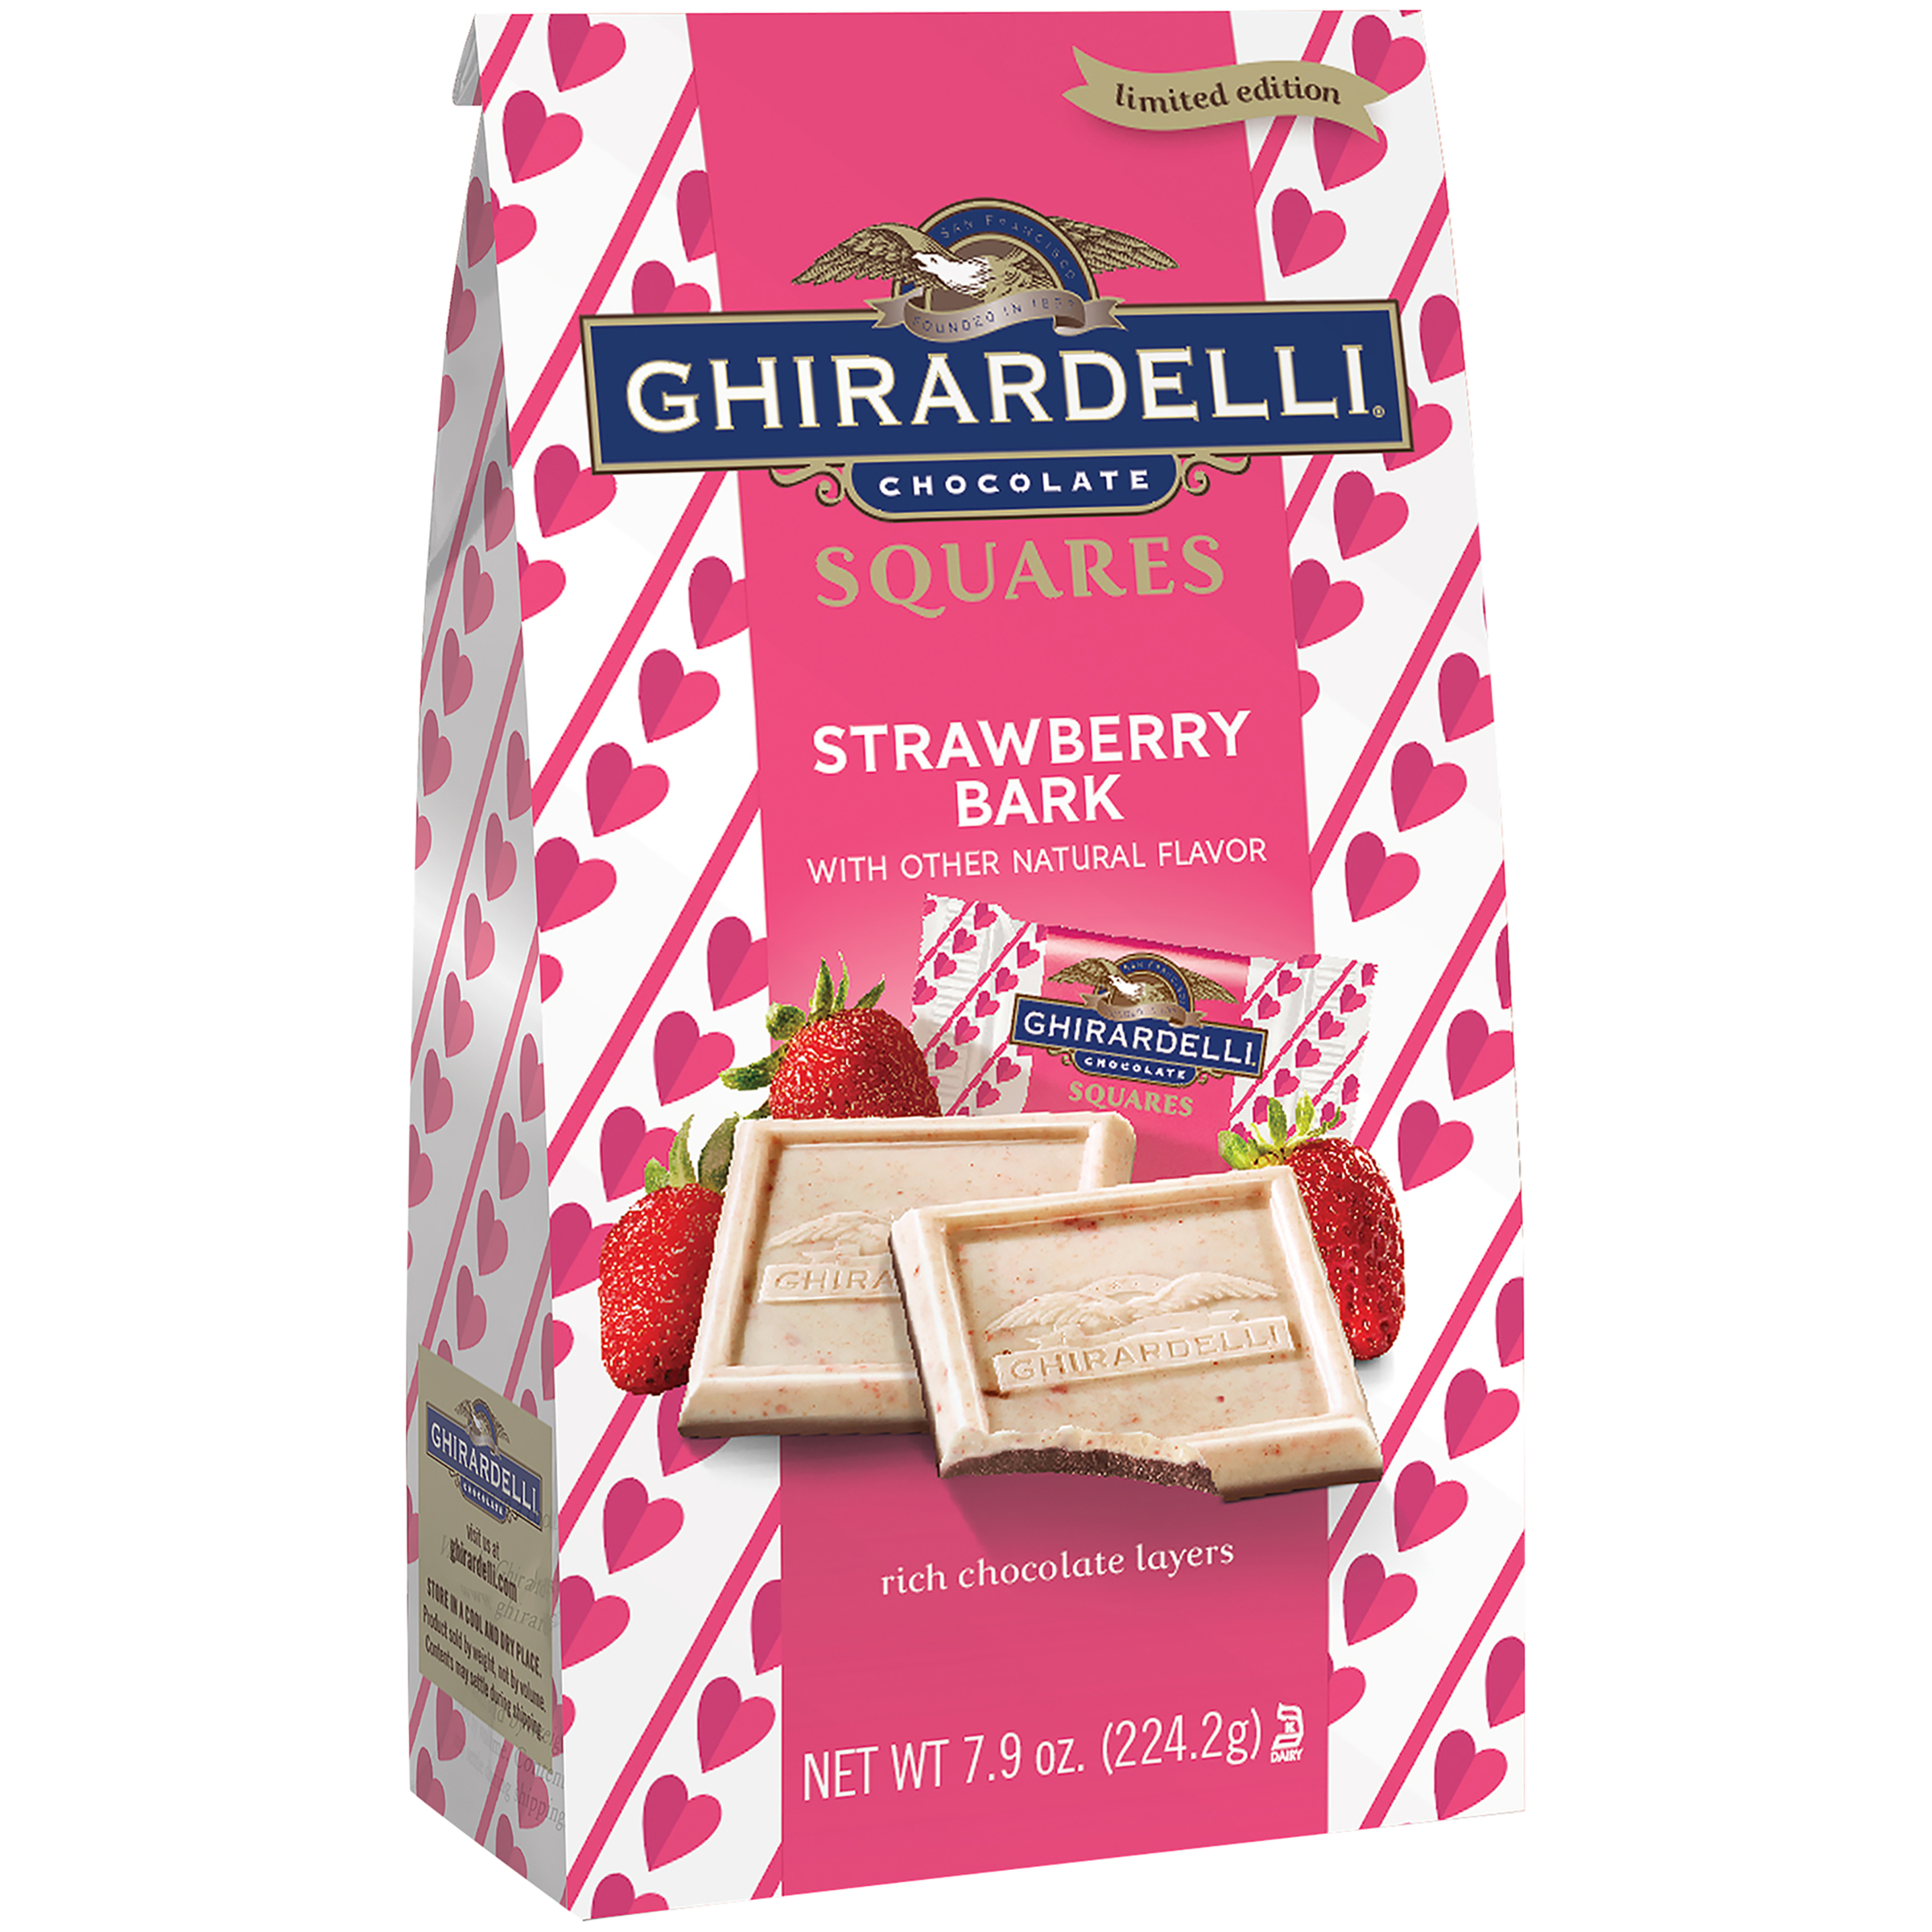 Ghirardelli Limited Edition Strawberry Chocolate Bark Squares, 7.9 Oz